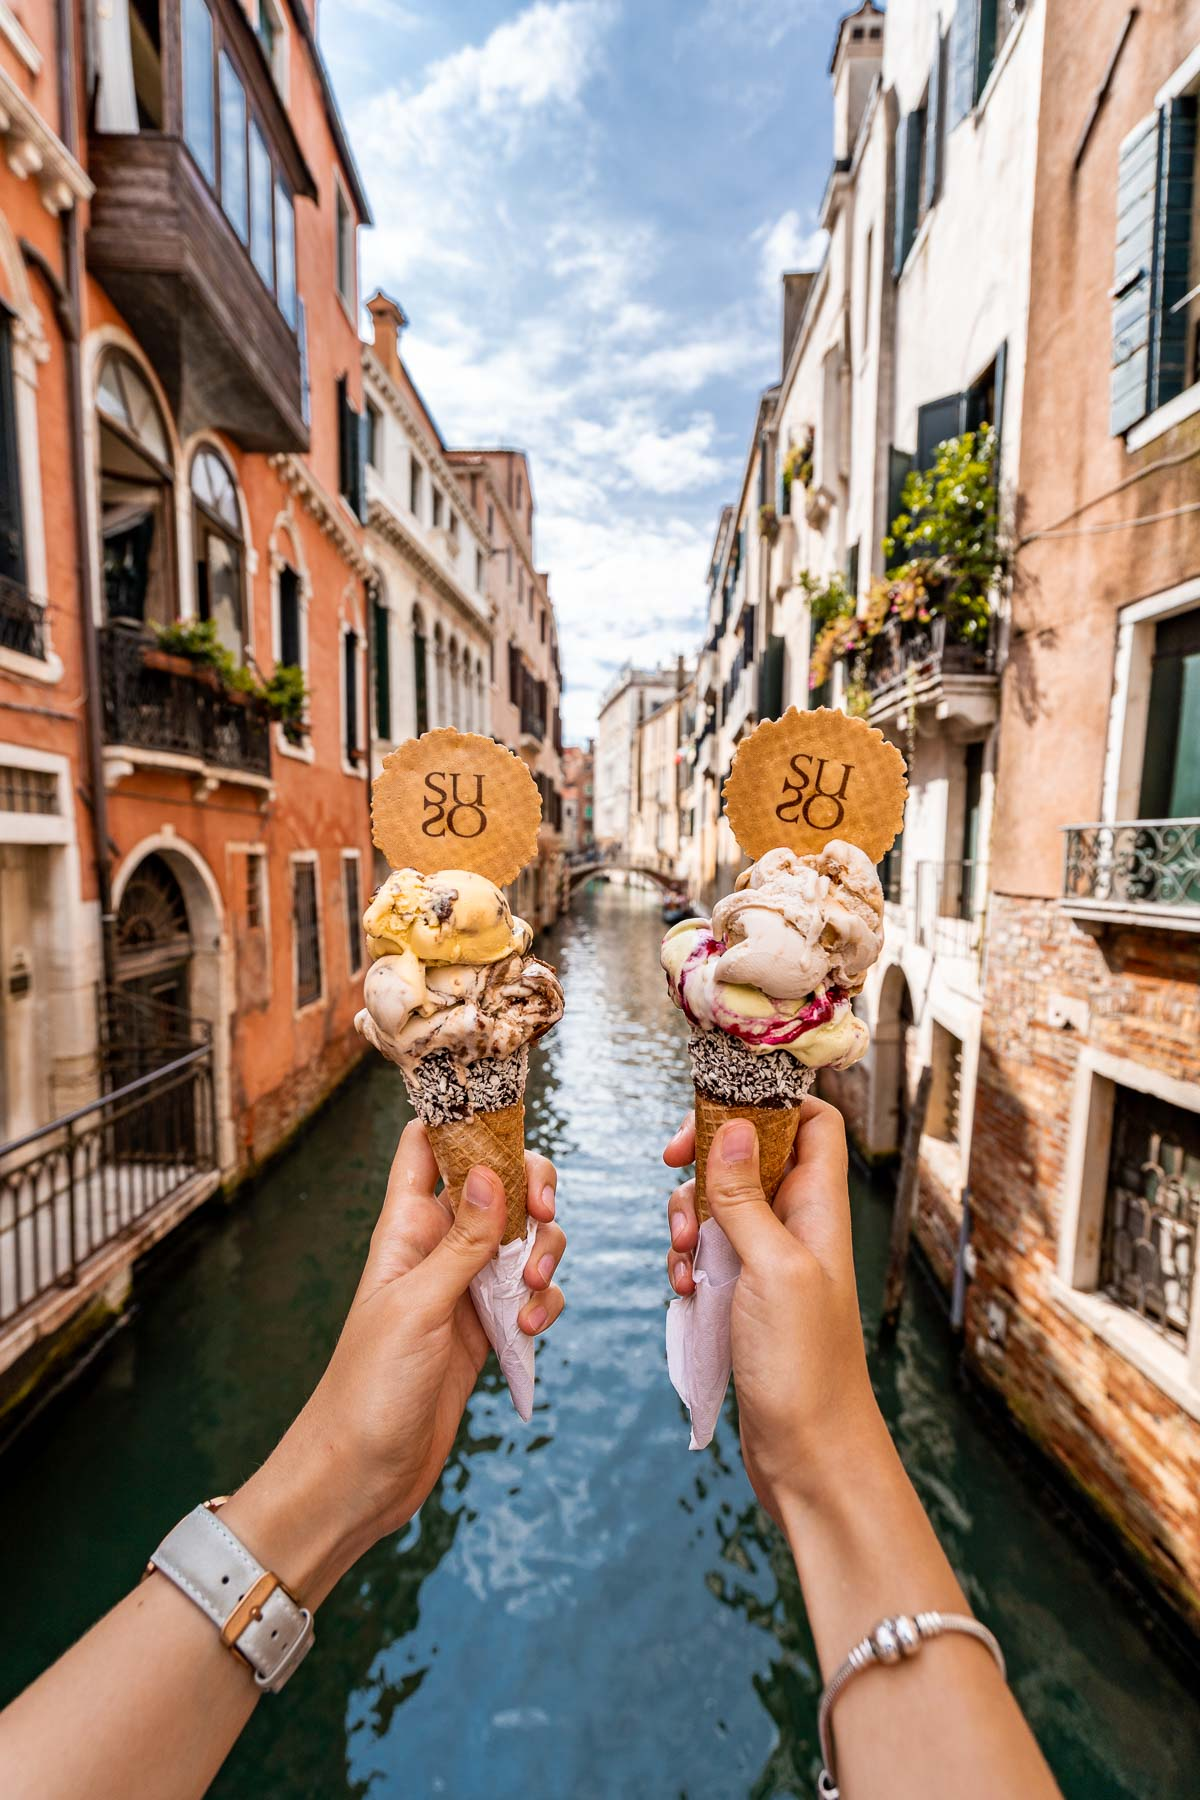 Gelato from Gelatoteca Suso in Venice